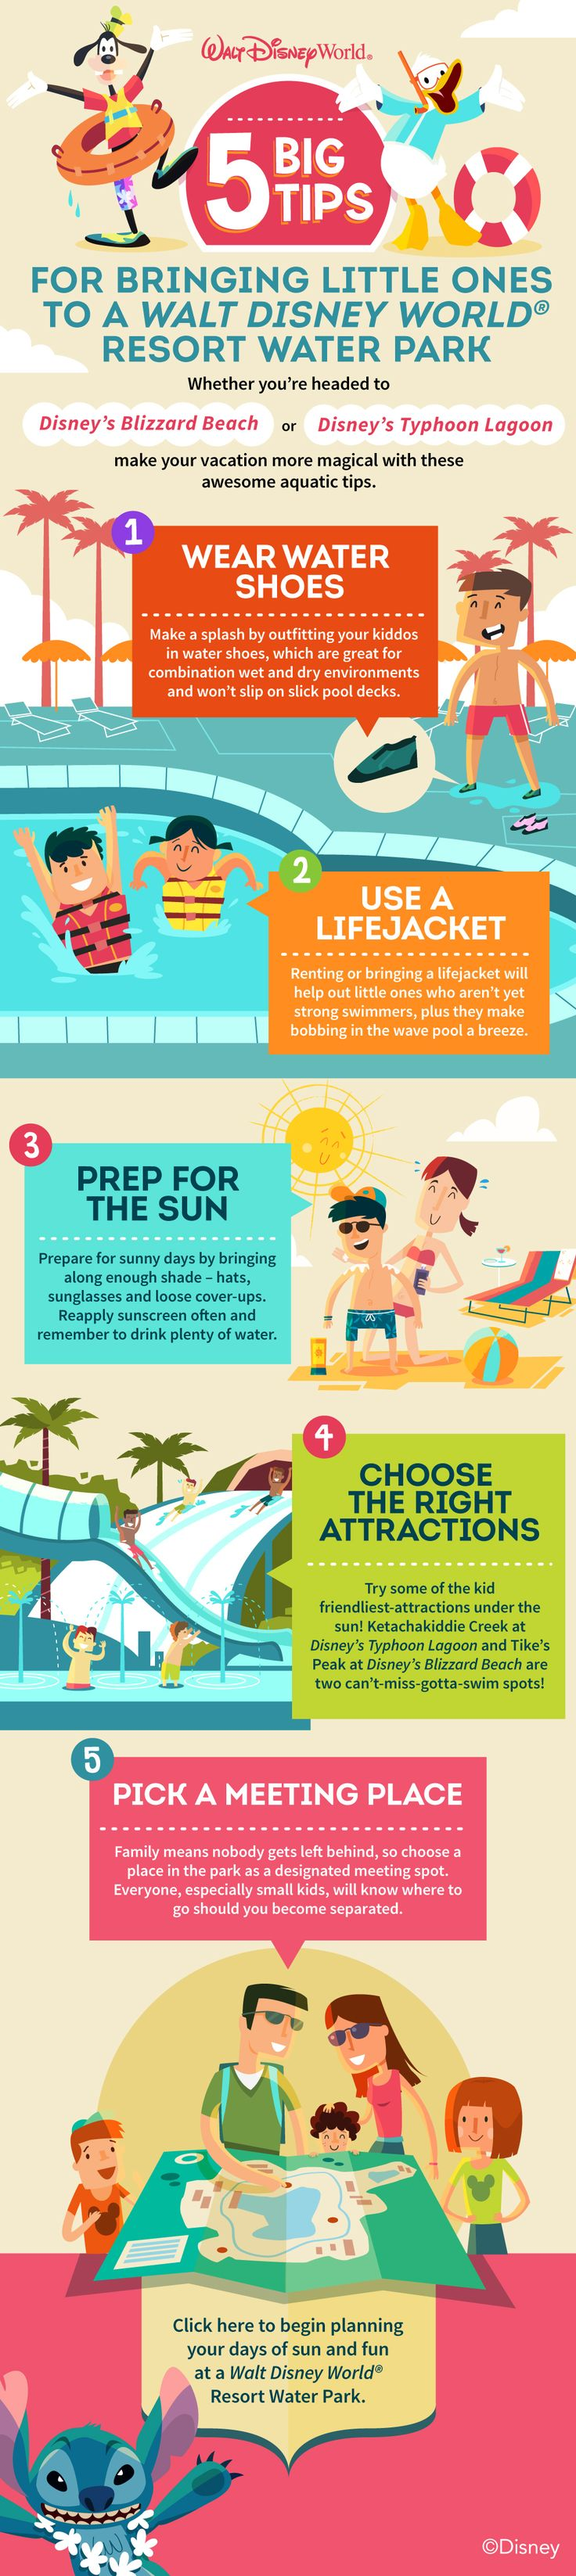 5 Big Tips for Bringing Little Ones to a Walt Disney World Resort Water Park! #vacation